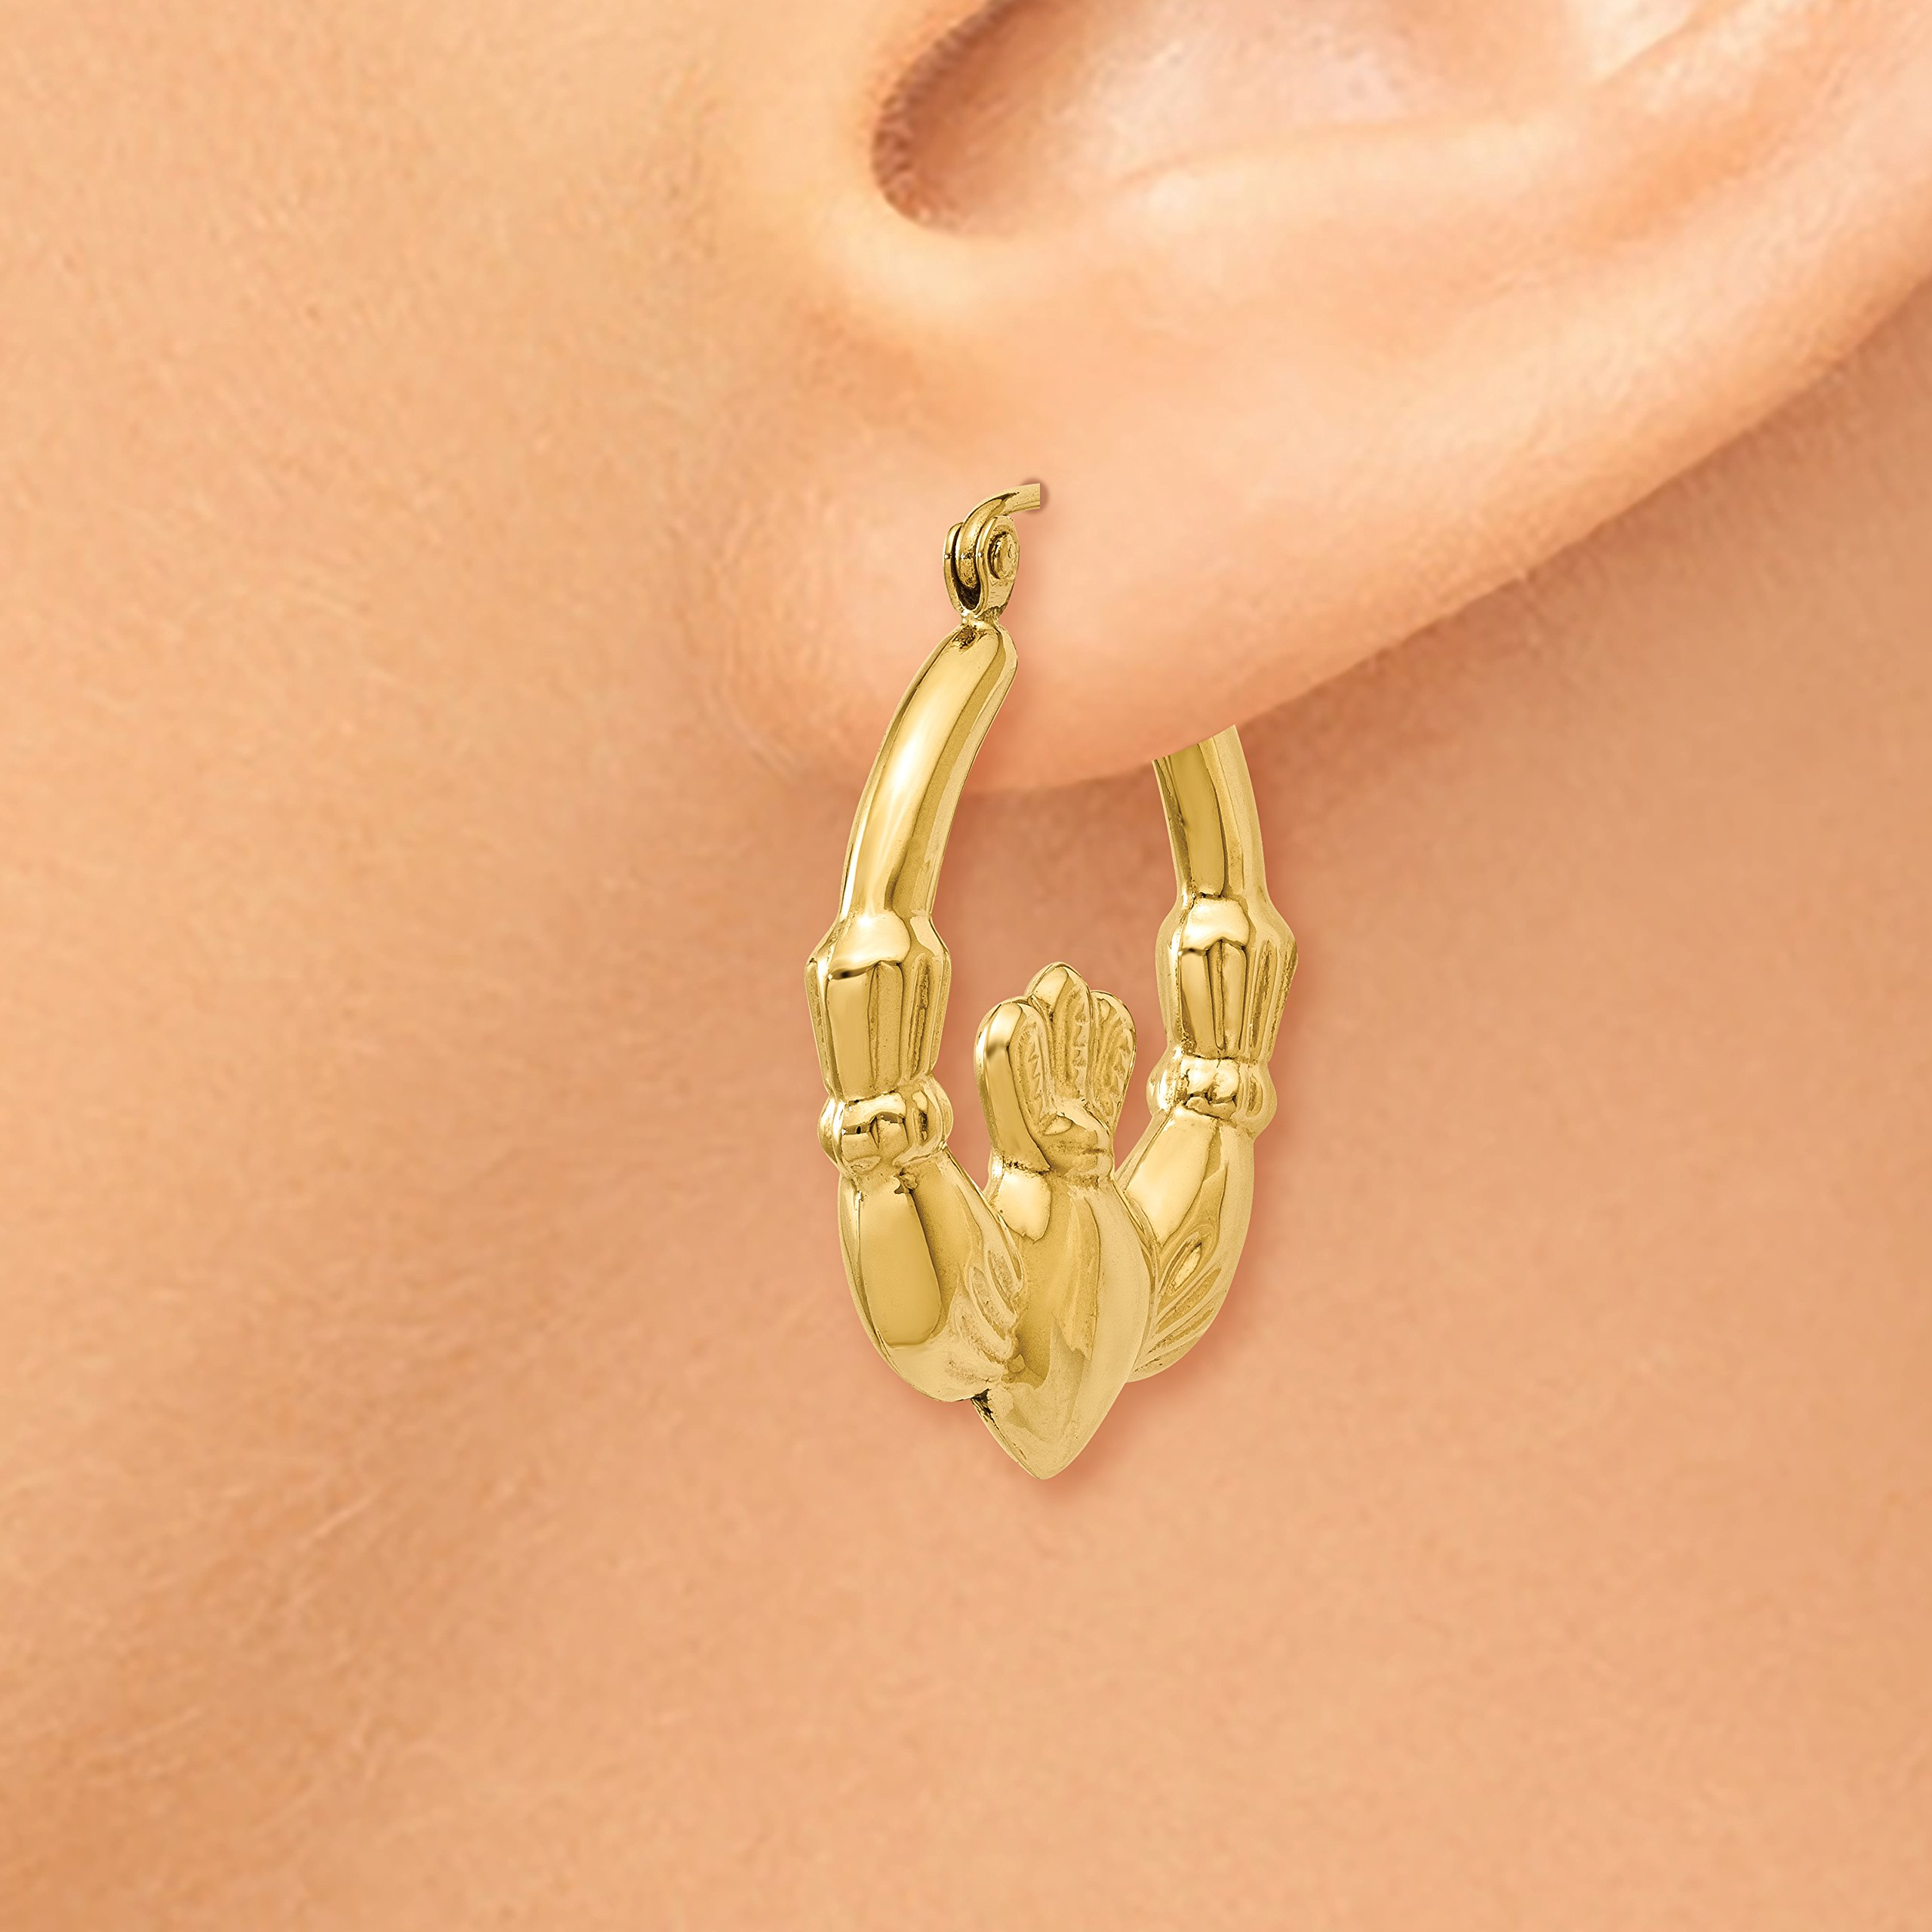 Roy Rose Jewelry 14K Yellow Gold Polished Claddagh Hoop Earrings 27mm length by Roy Rose Jewelry (Image #3)